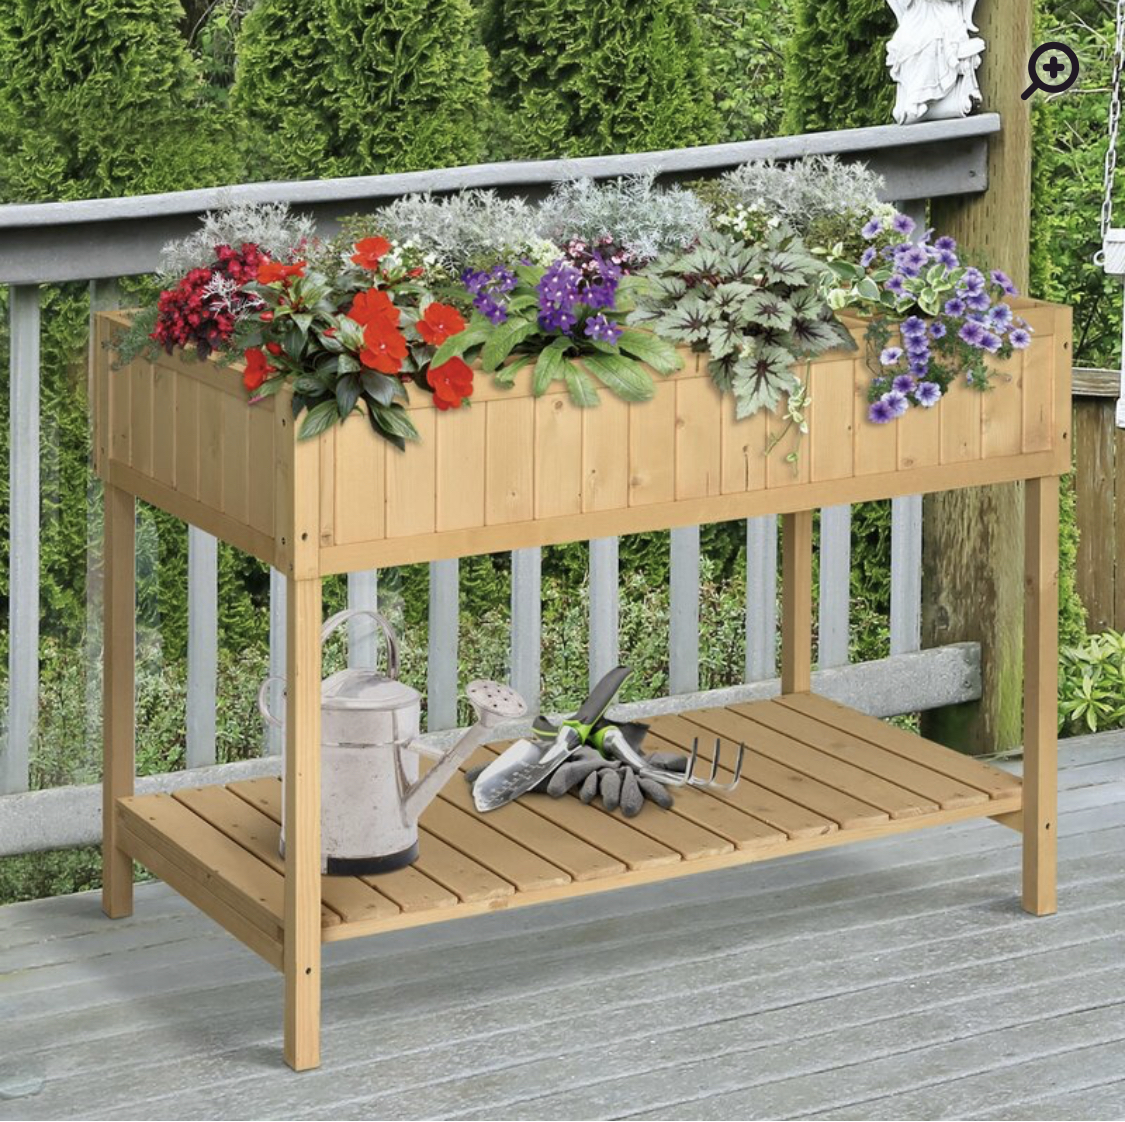 Raised Garden Cart with Shelf